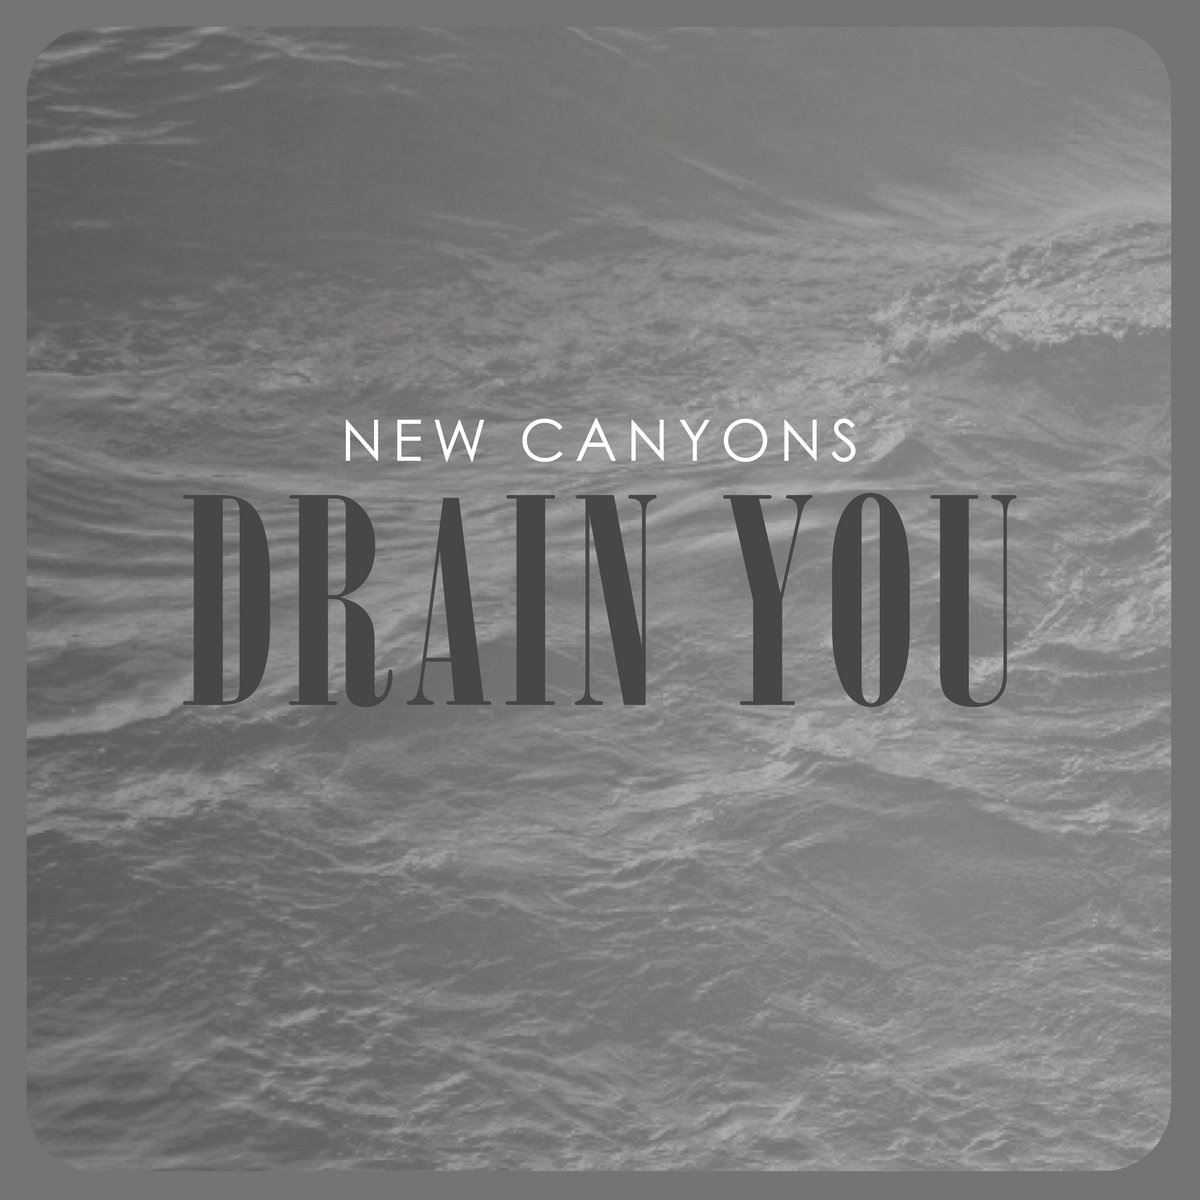 New Canyons